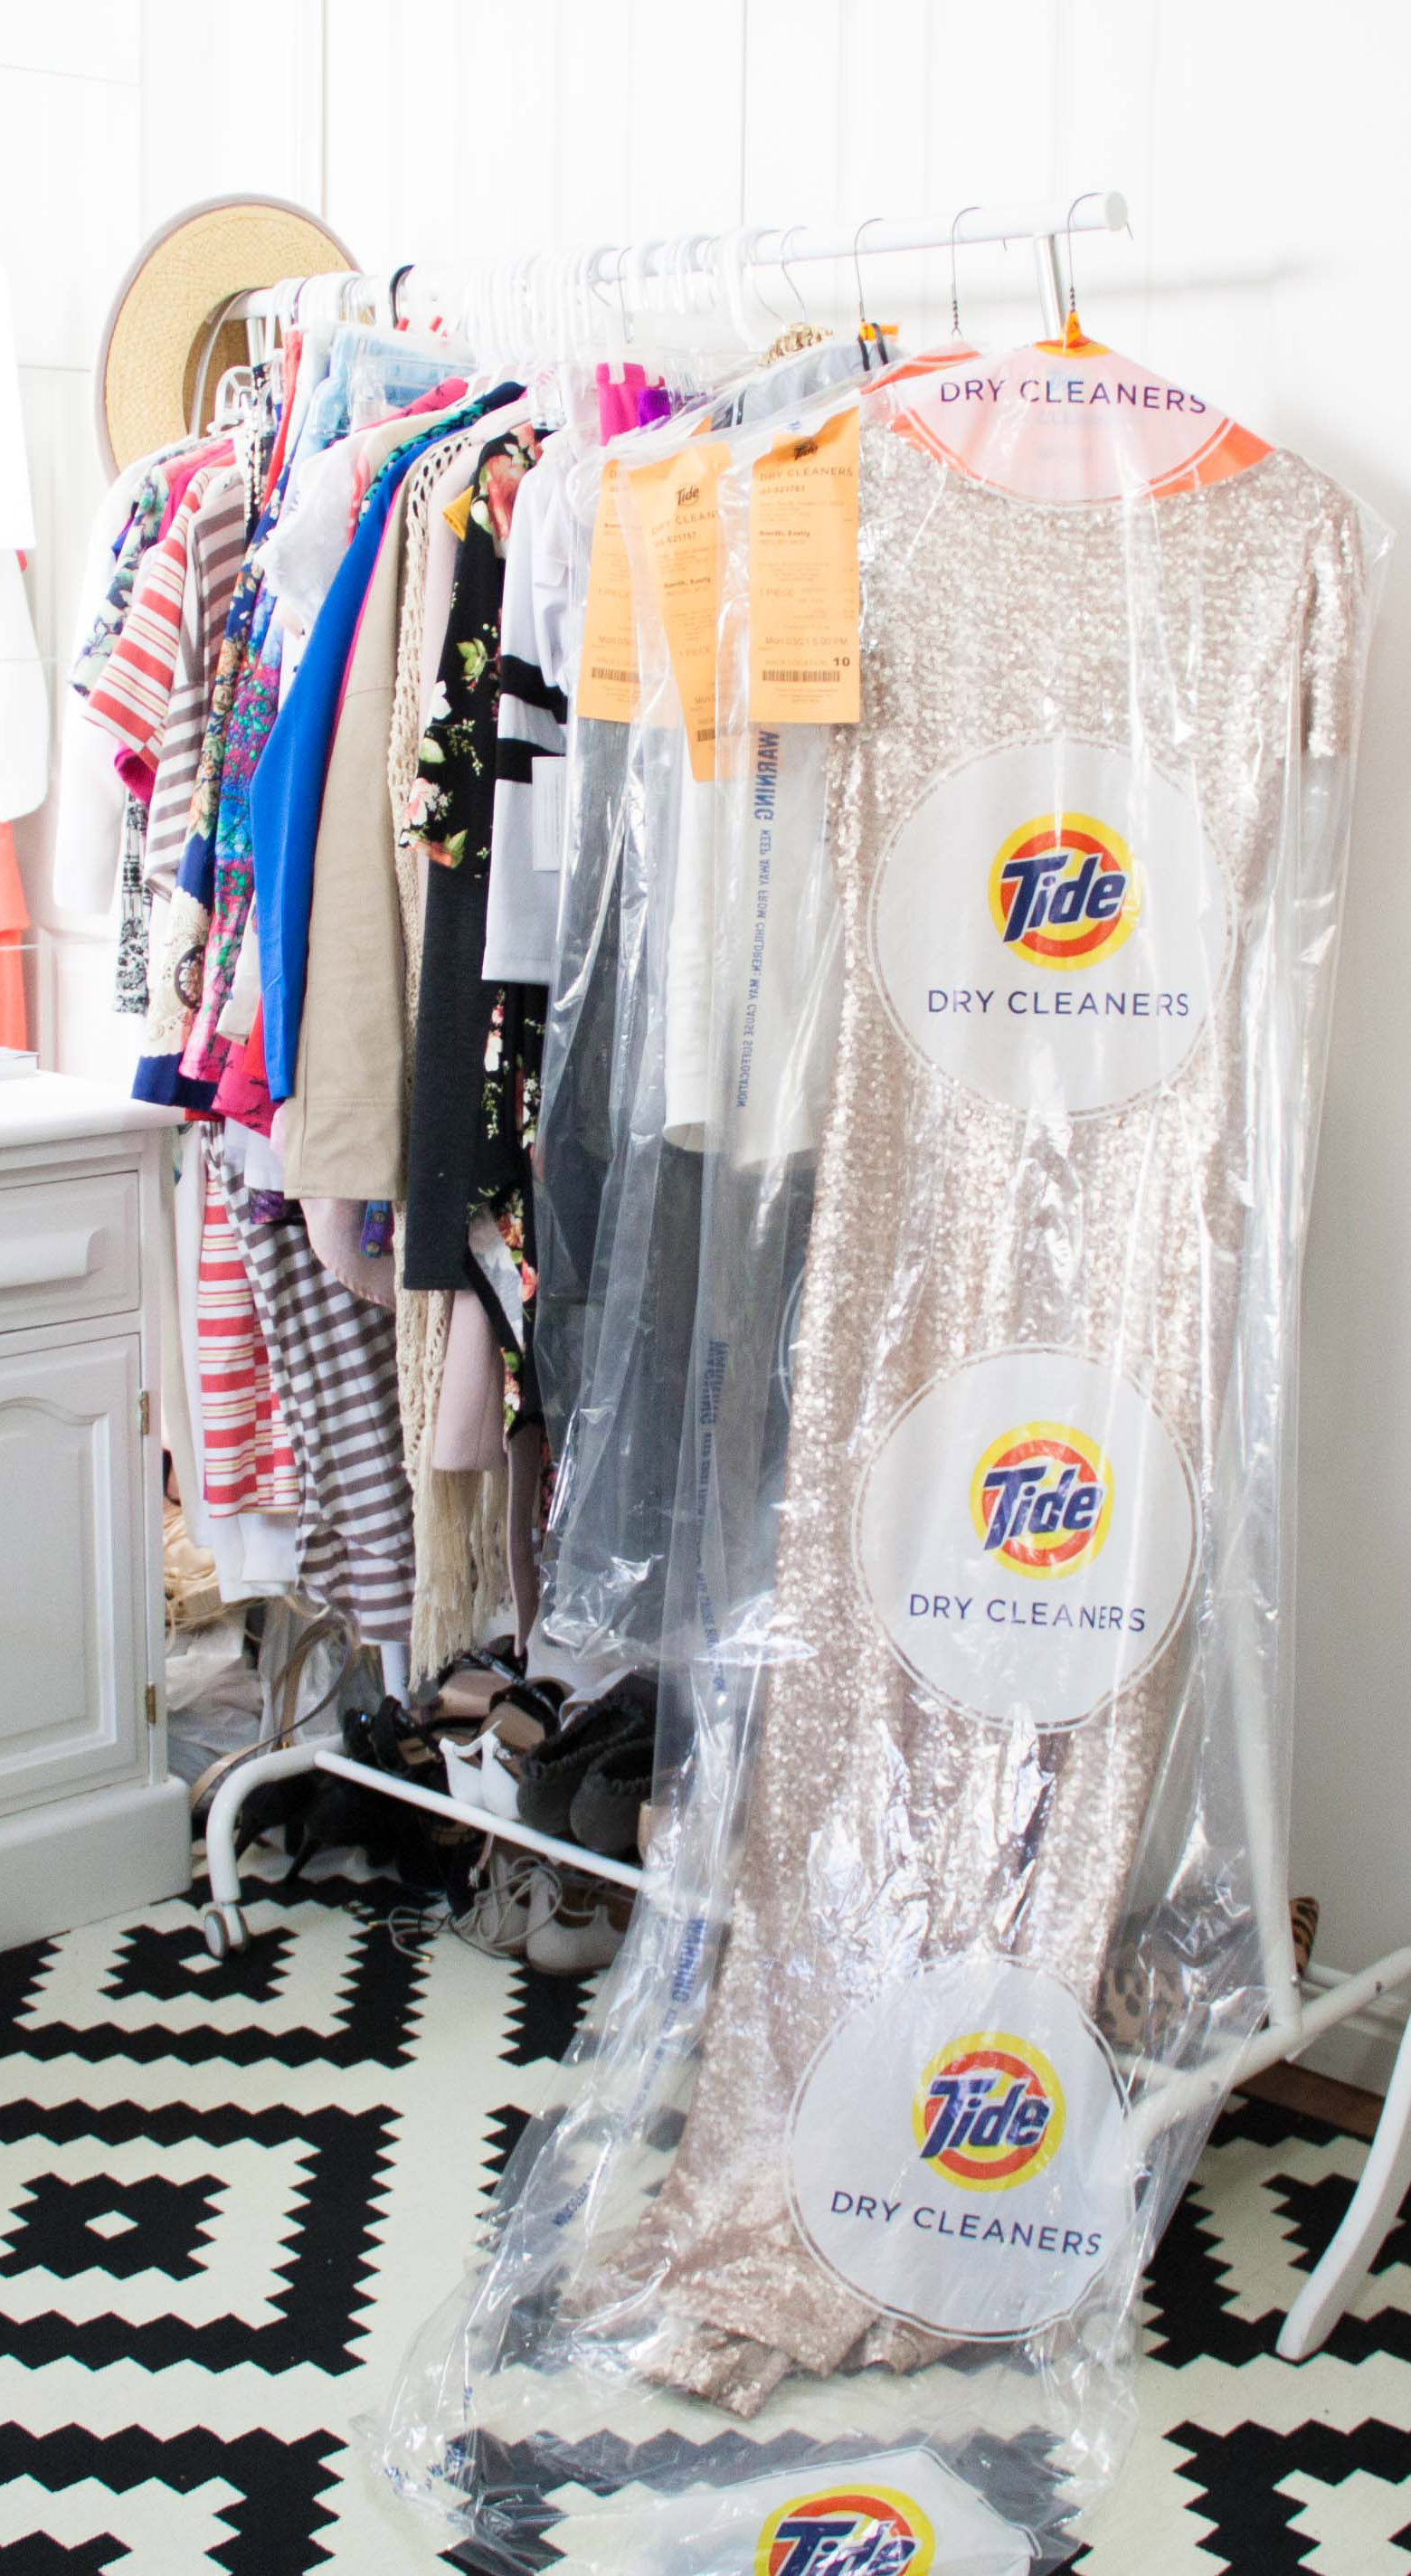 Tide Dry Cleaners Review & Giveaway!